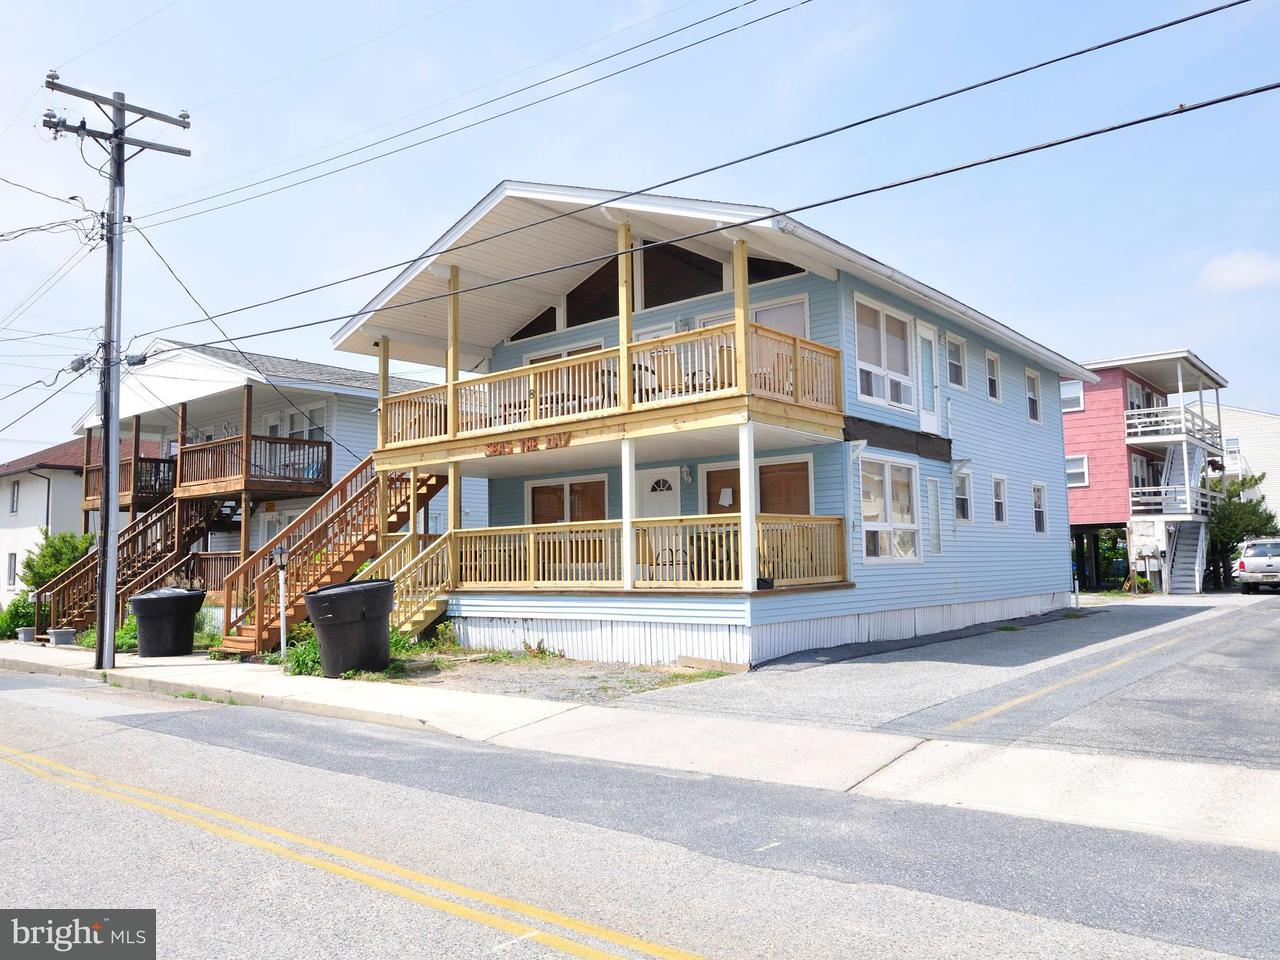 Single Family Home for Sale at 8 78th Street 8 78th Street Ocean City, Maryland 21842 United States